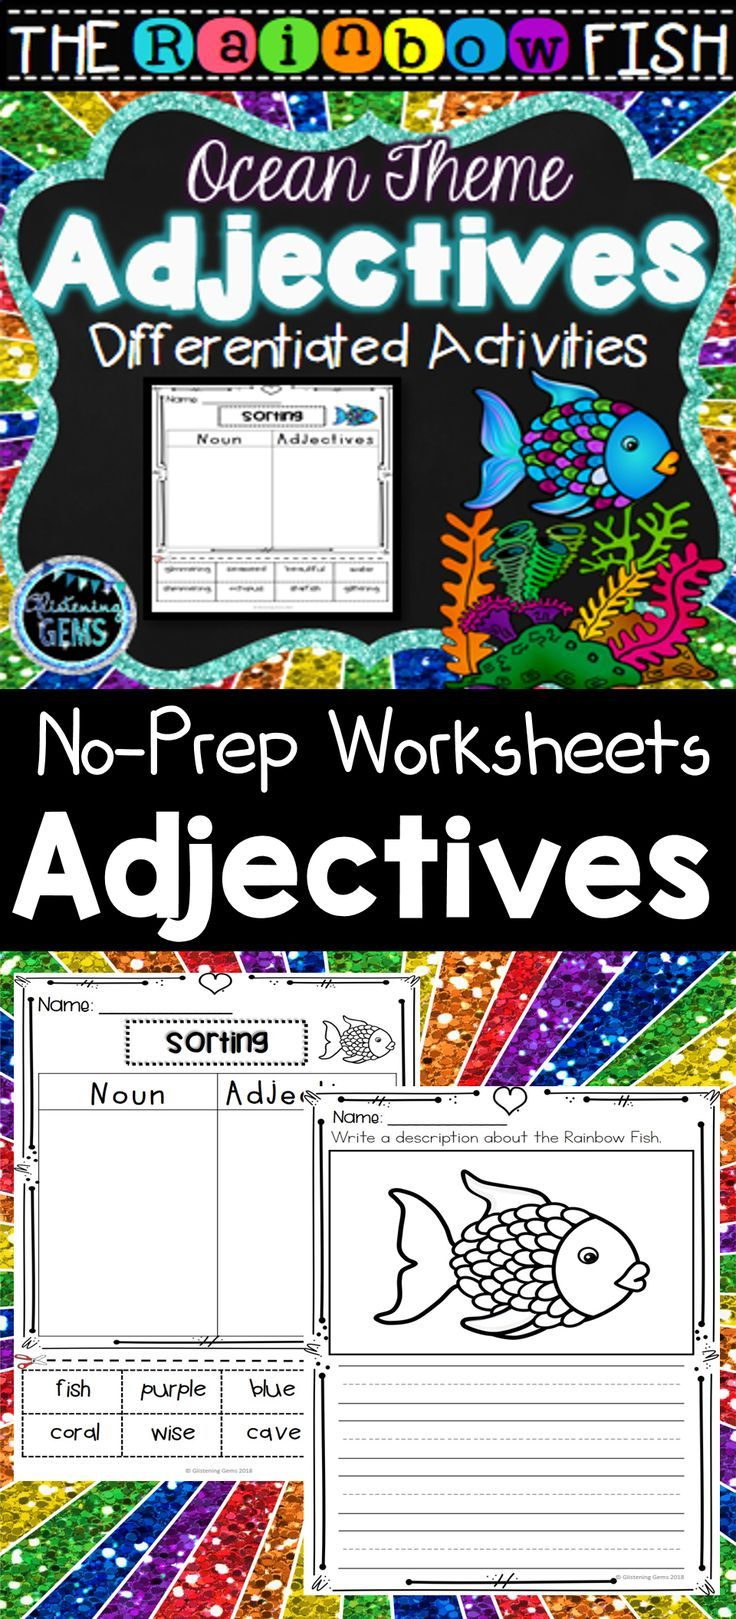 The Rainbow Fish Adjective Worksheets Printables Color And Black Lined Therainbowfish Adjec Rainbow Fish Adjectives Printables Rainbow Fish Activities [ 1619 x 736 Pixel ]